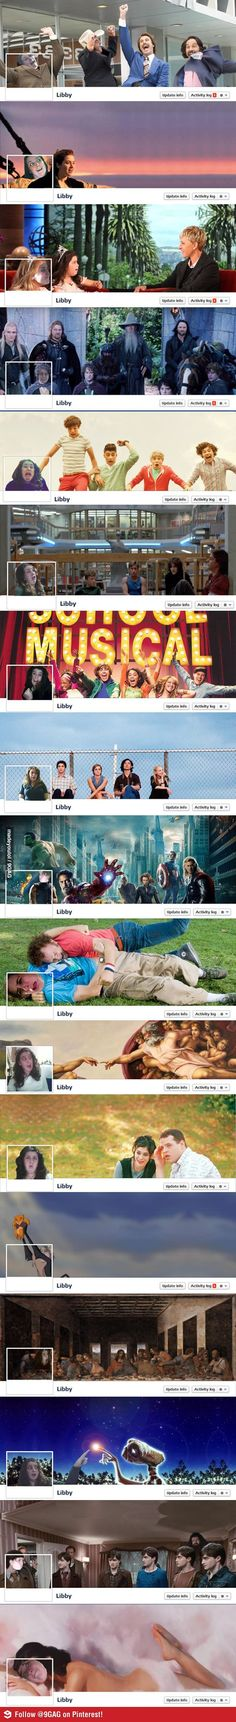 The Best Facebook Cover Photos